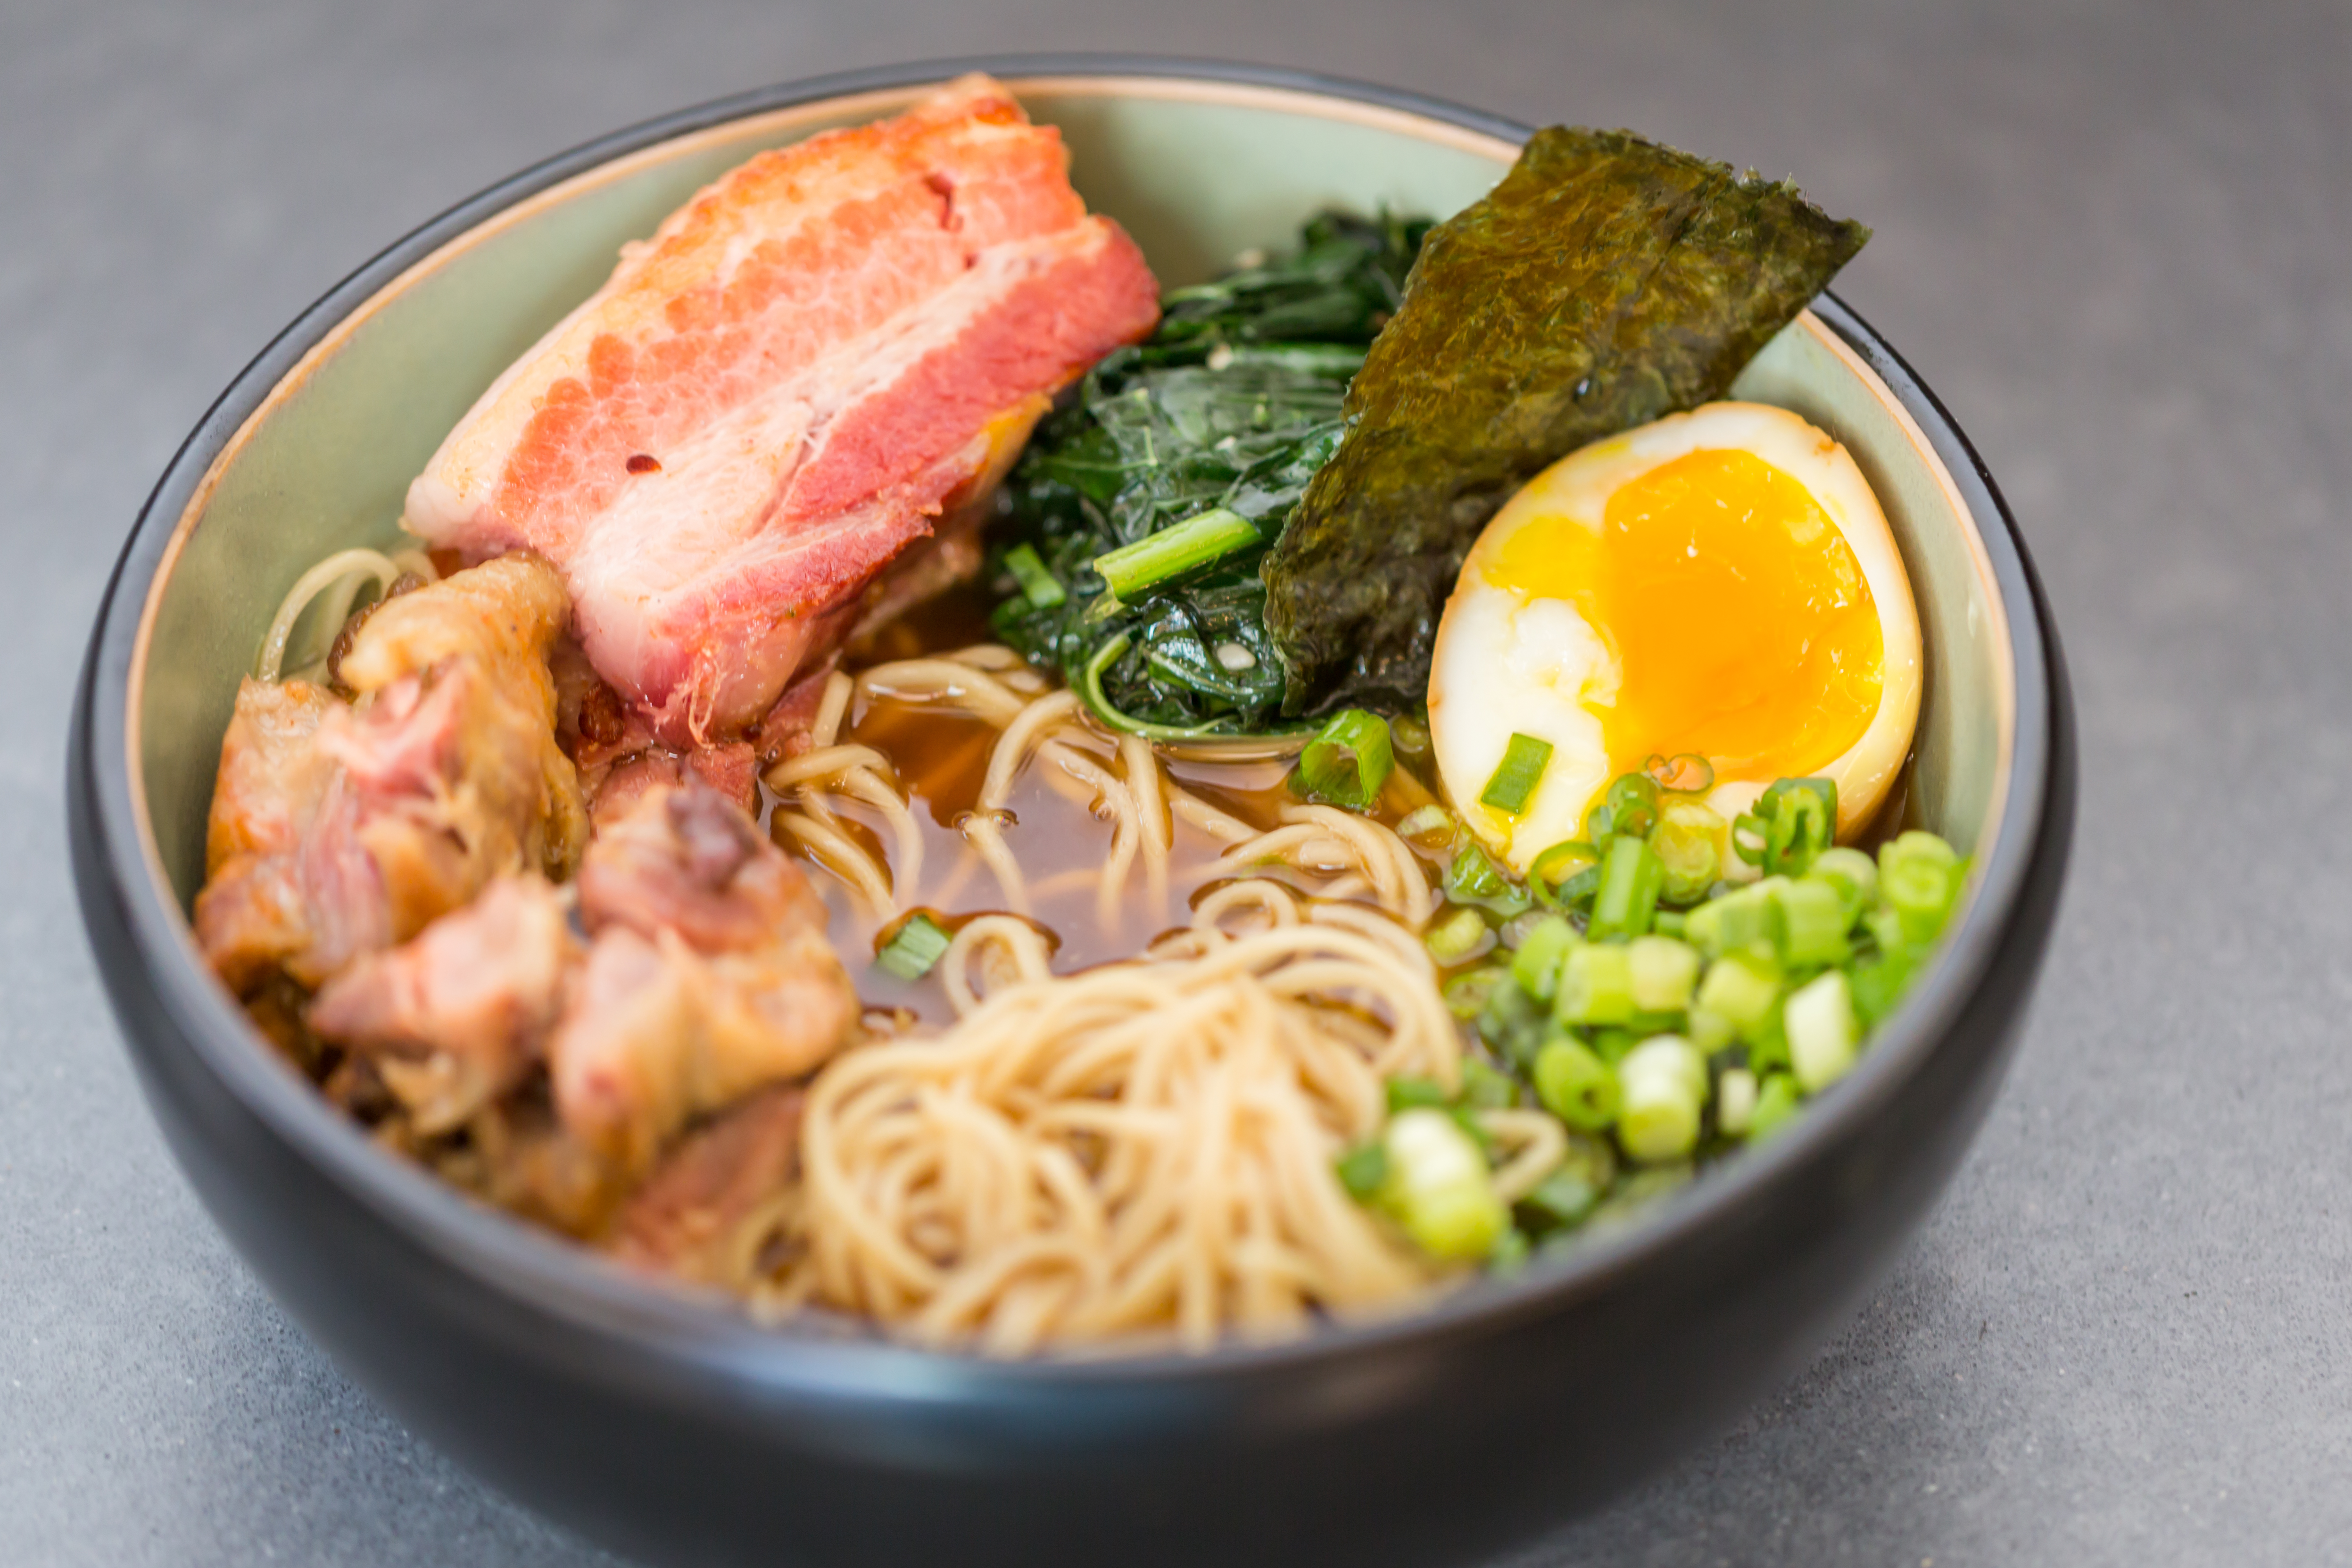 <p>Ramen: braised pork, spinach, soft egg and shoyu broth (Image: Courtesy District Winery)</p>